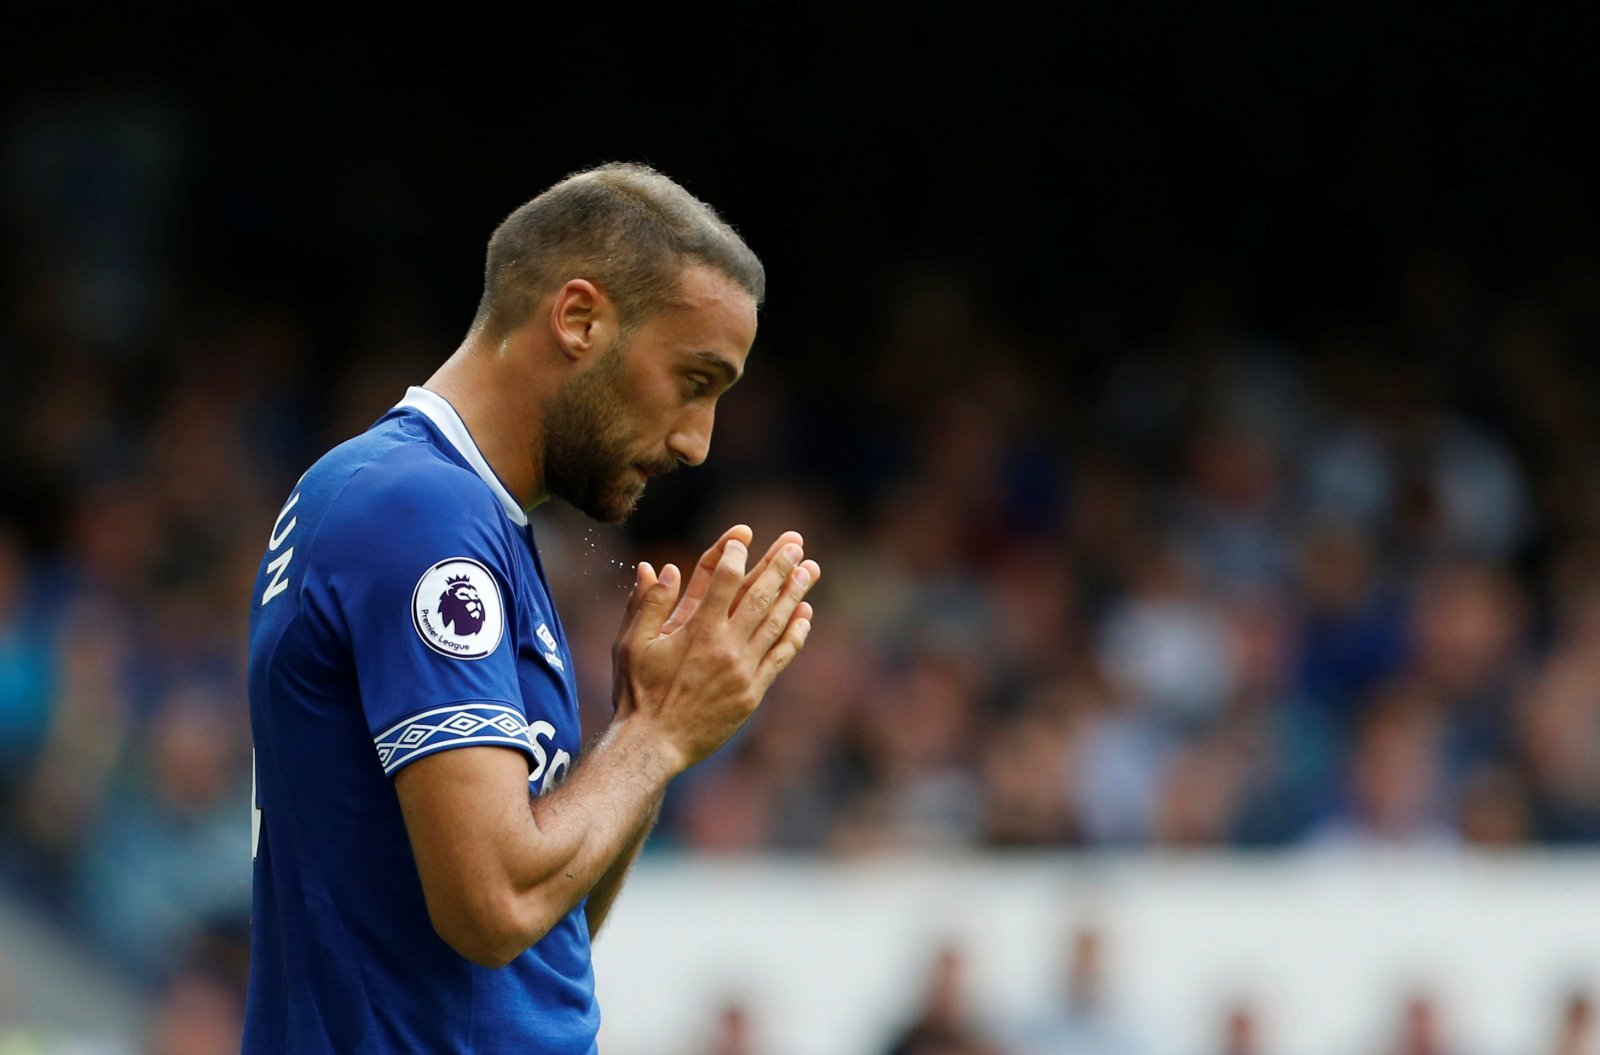 Everton fans on Twitter open to Tosun departure